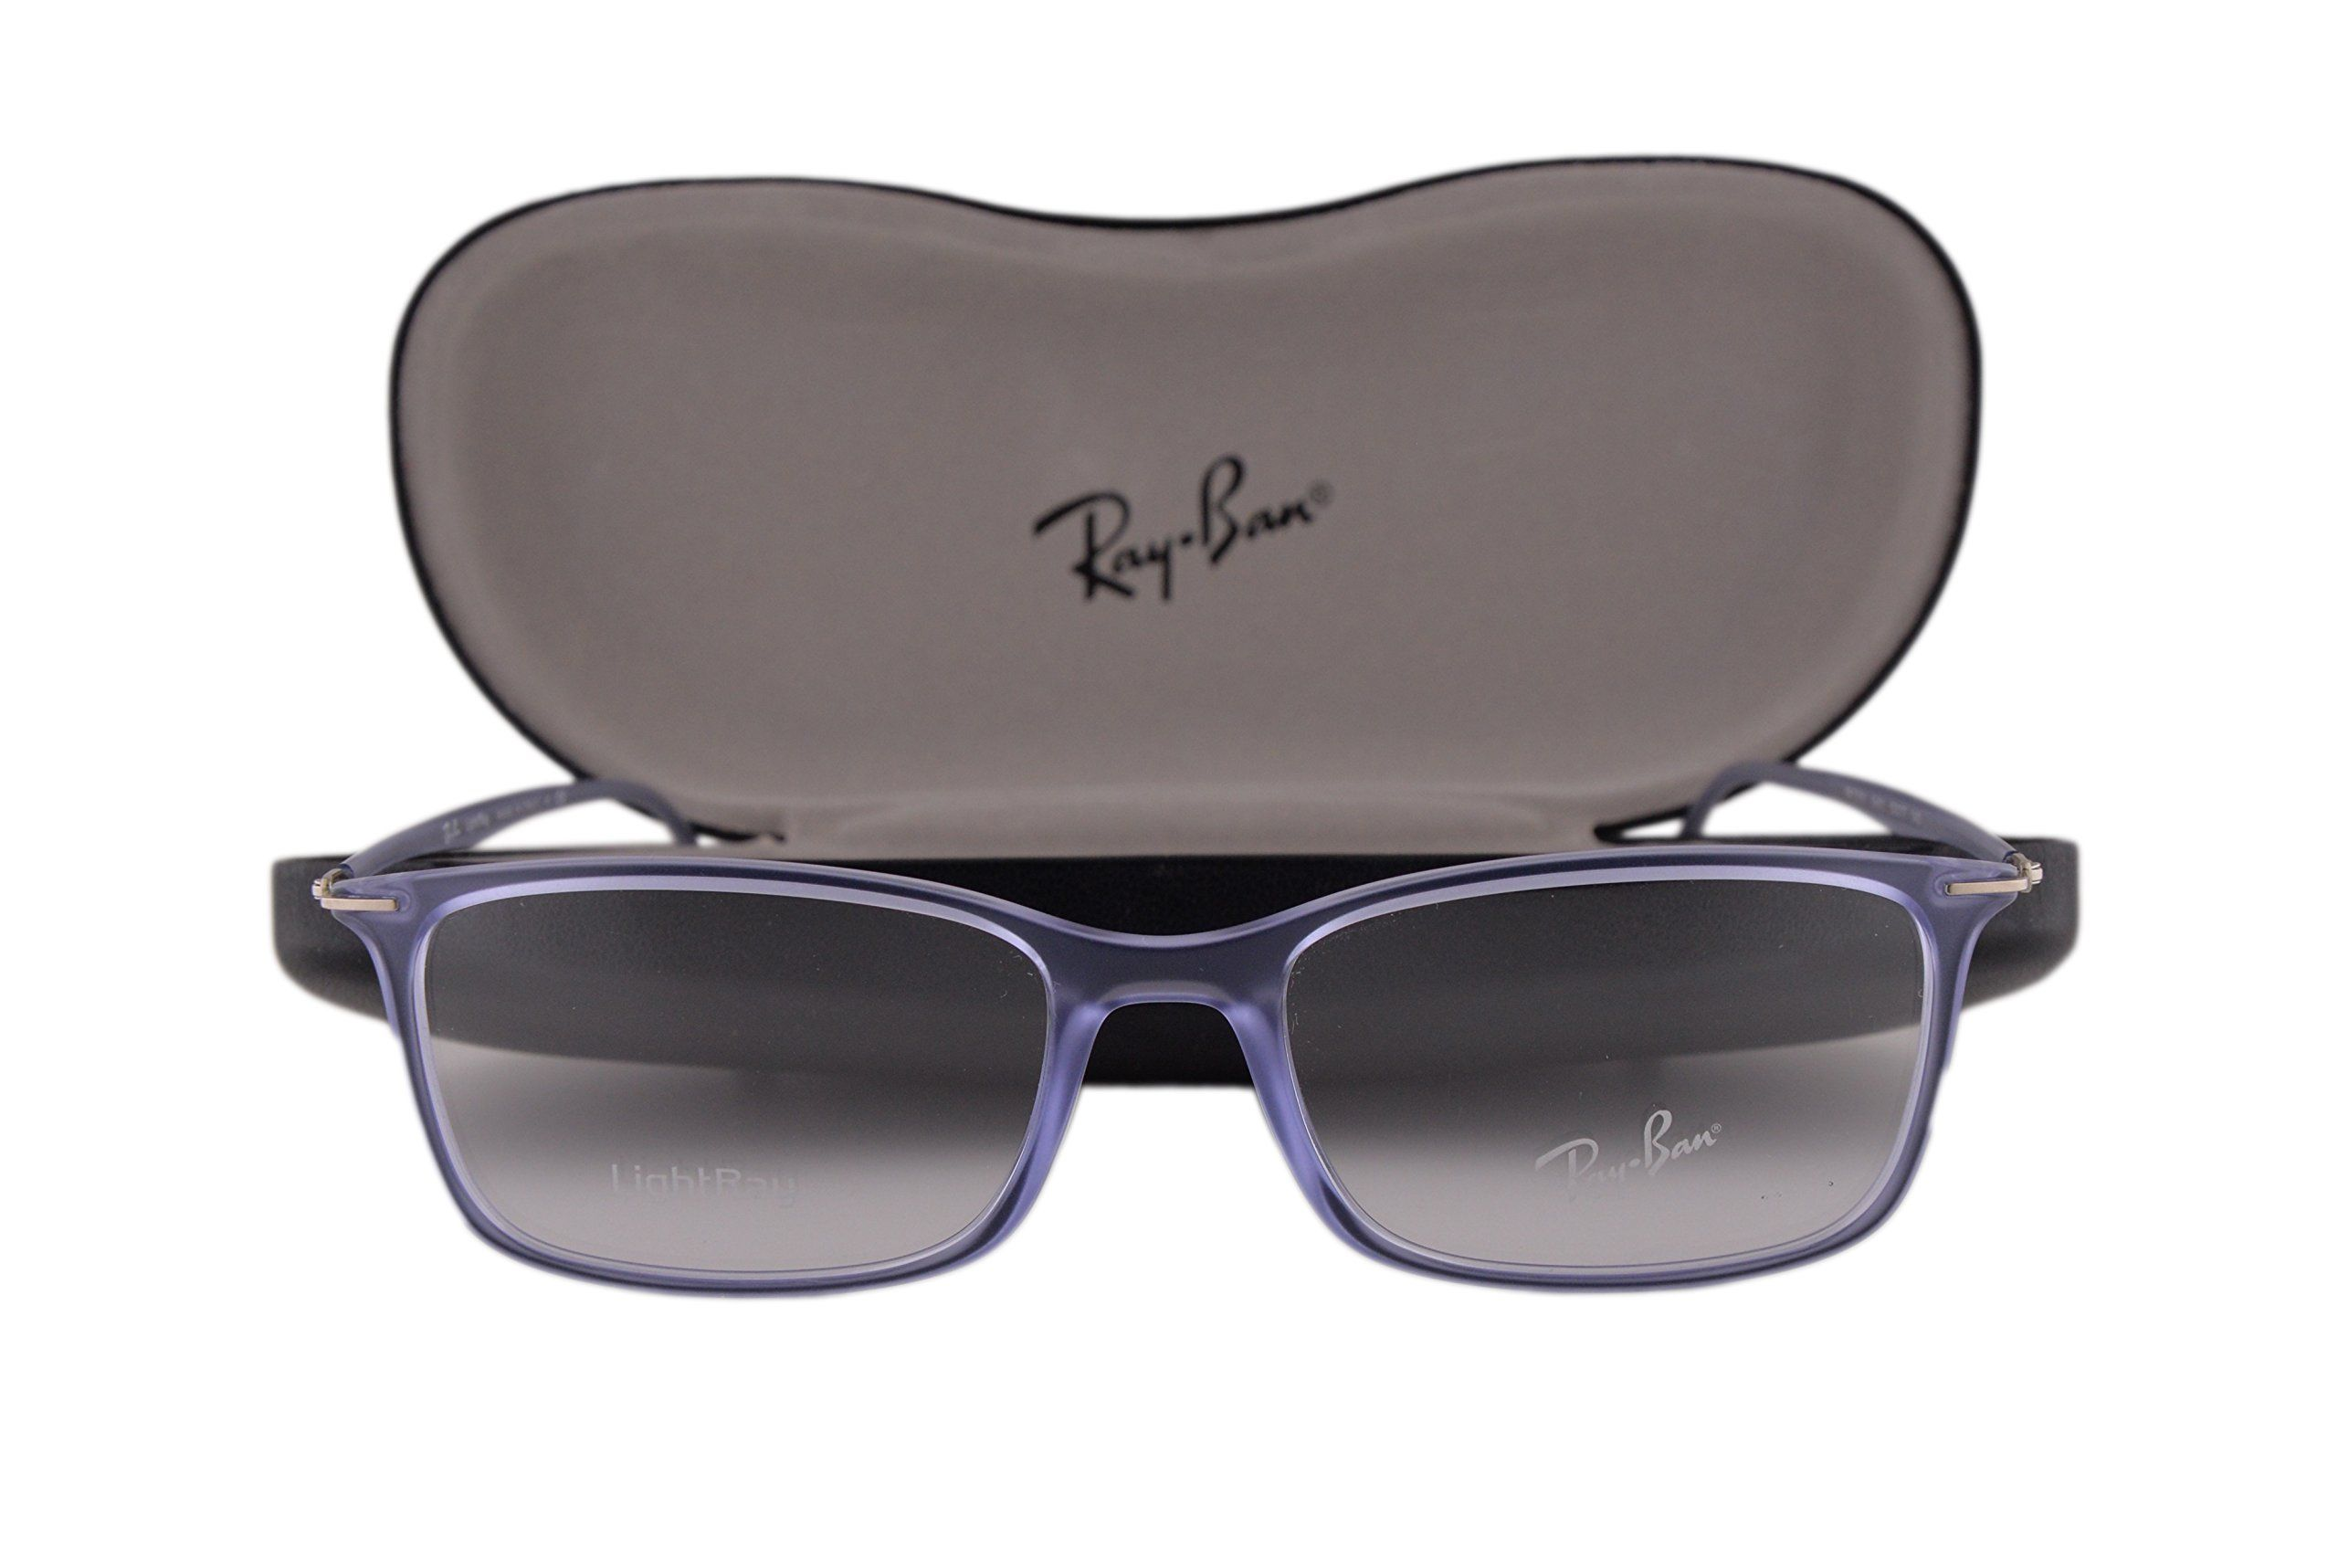 98fe3f186d Ray Ban RX7031 Eyeglasses 53-17-140 Demi Gloss Wisteria 5401 RX 7031. Ray  Ban Eyewear. Model  RX7031. Color Code  5401 Demi Gloss Wisteria w DEMO l…